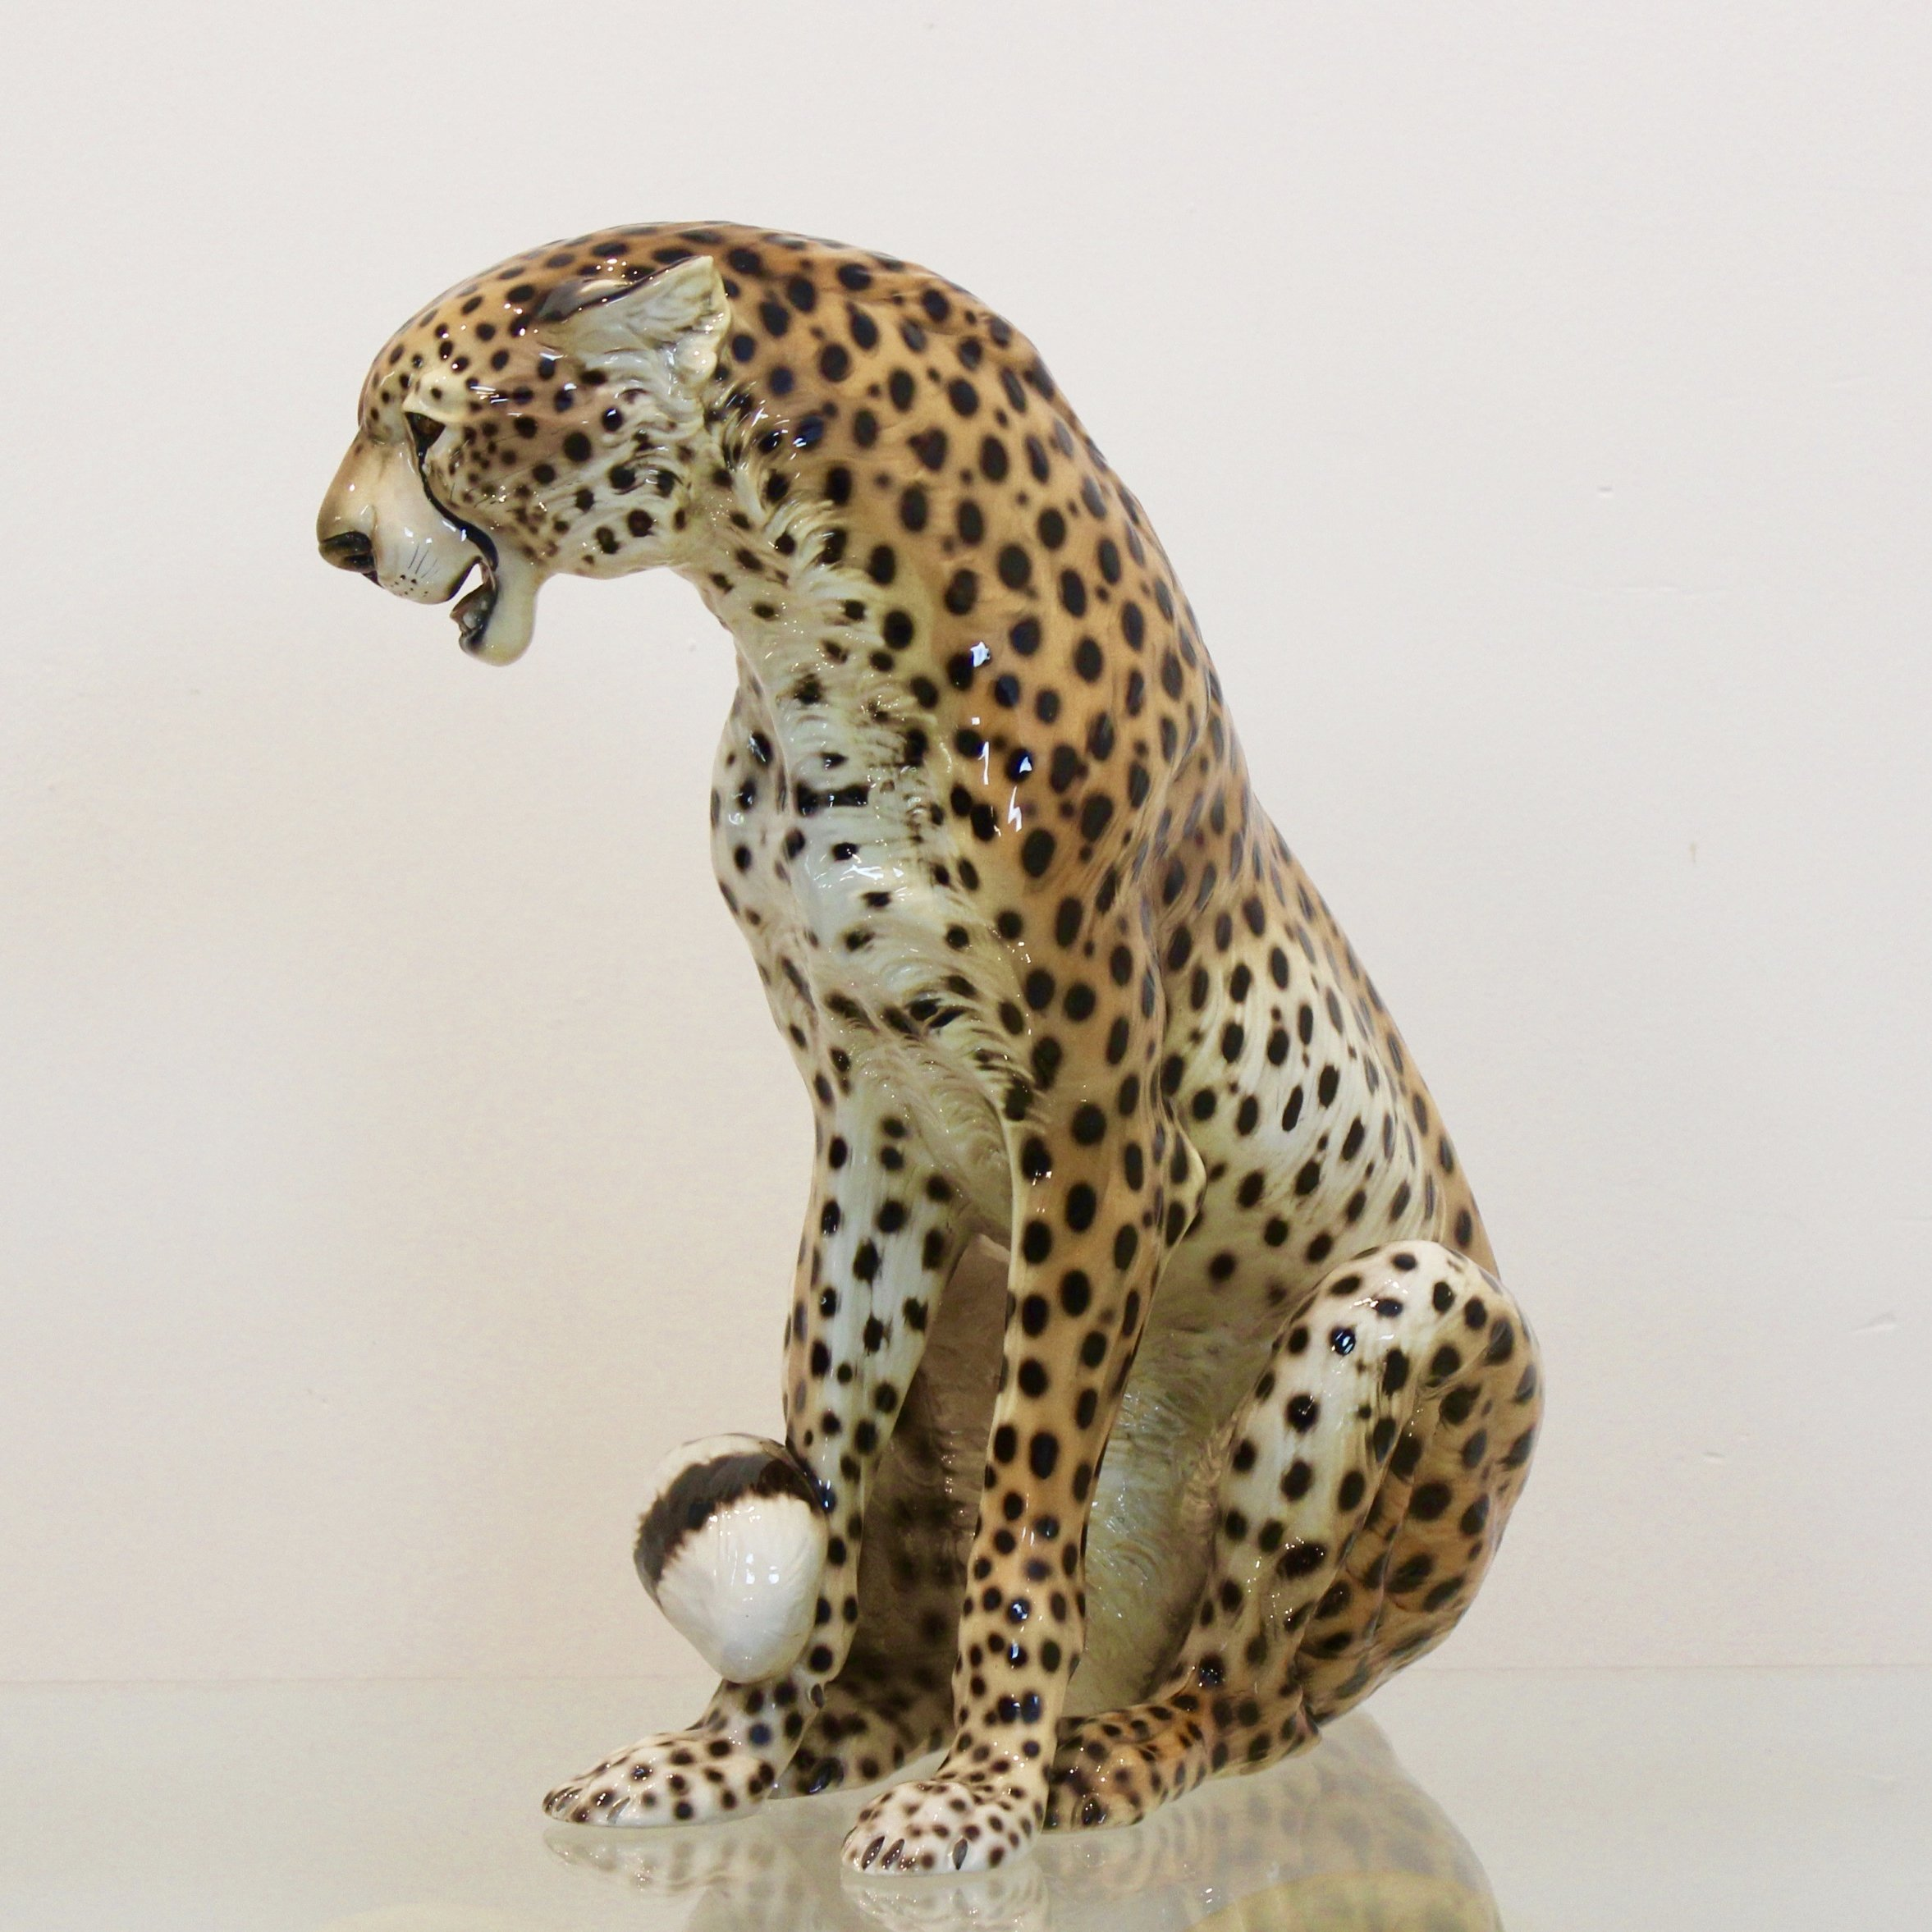 Hand Painted Porcelain Leopard Sculpture By Ronzan Italy 1970s 84835